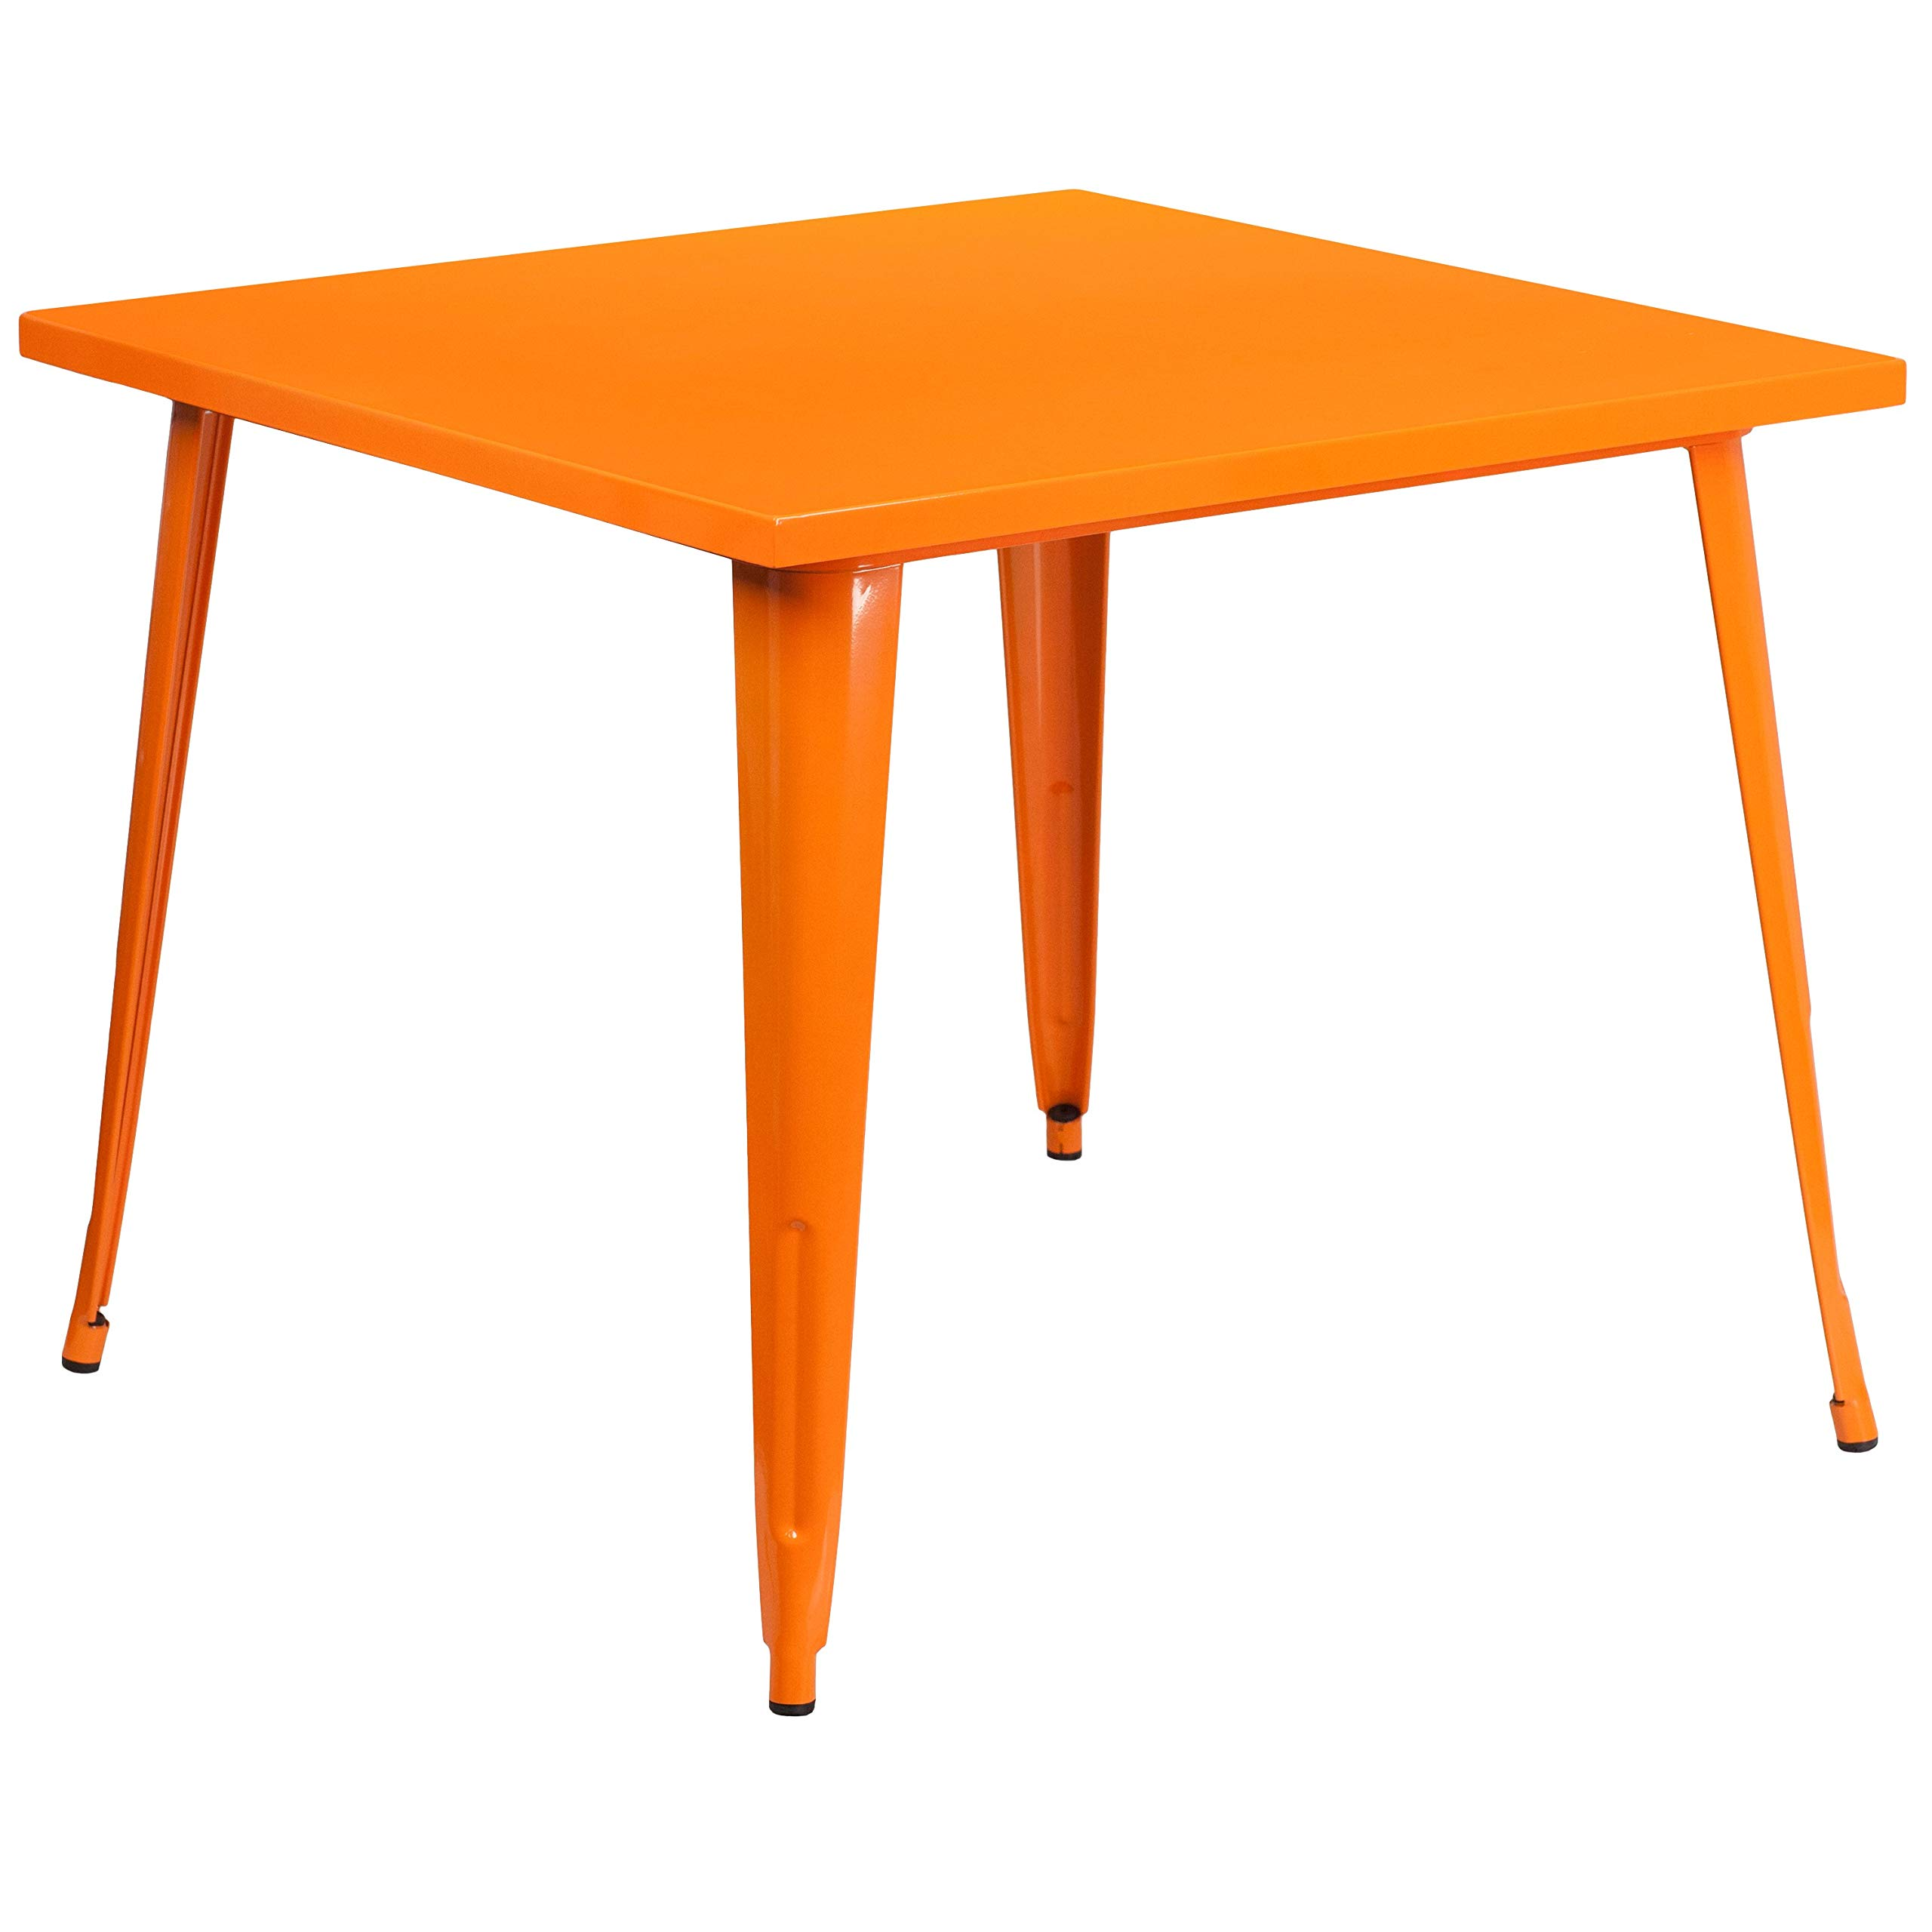 MFO 35.5'' Square Orange Metal Indoor-Outdoor Table by My Friendly Office